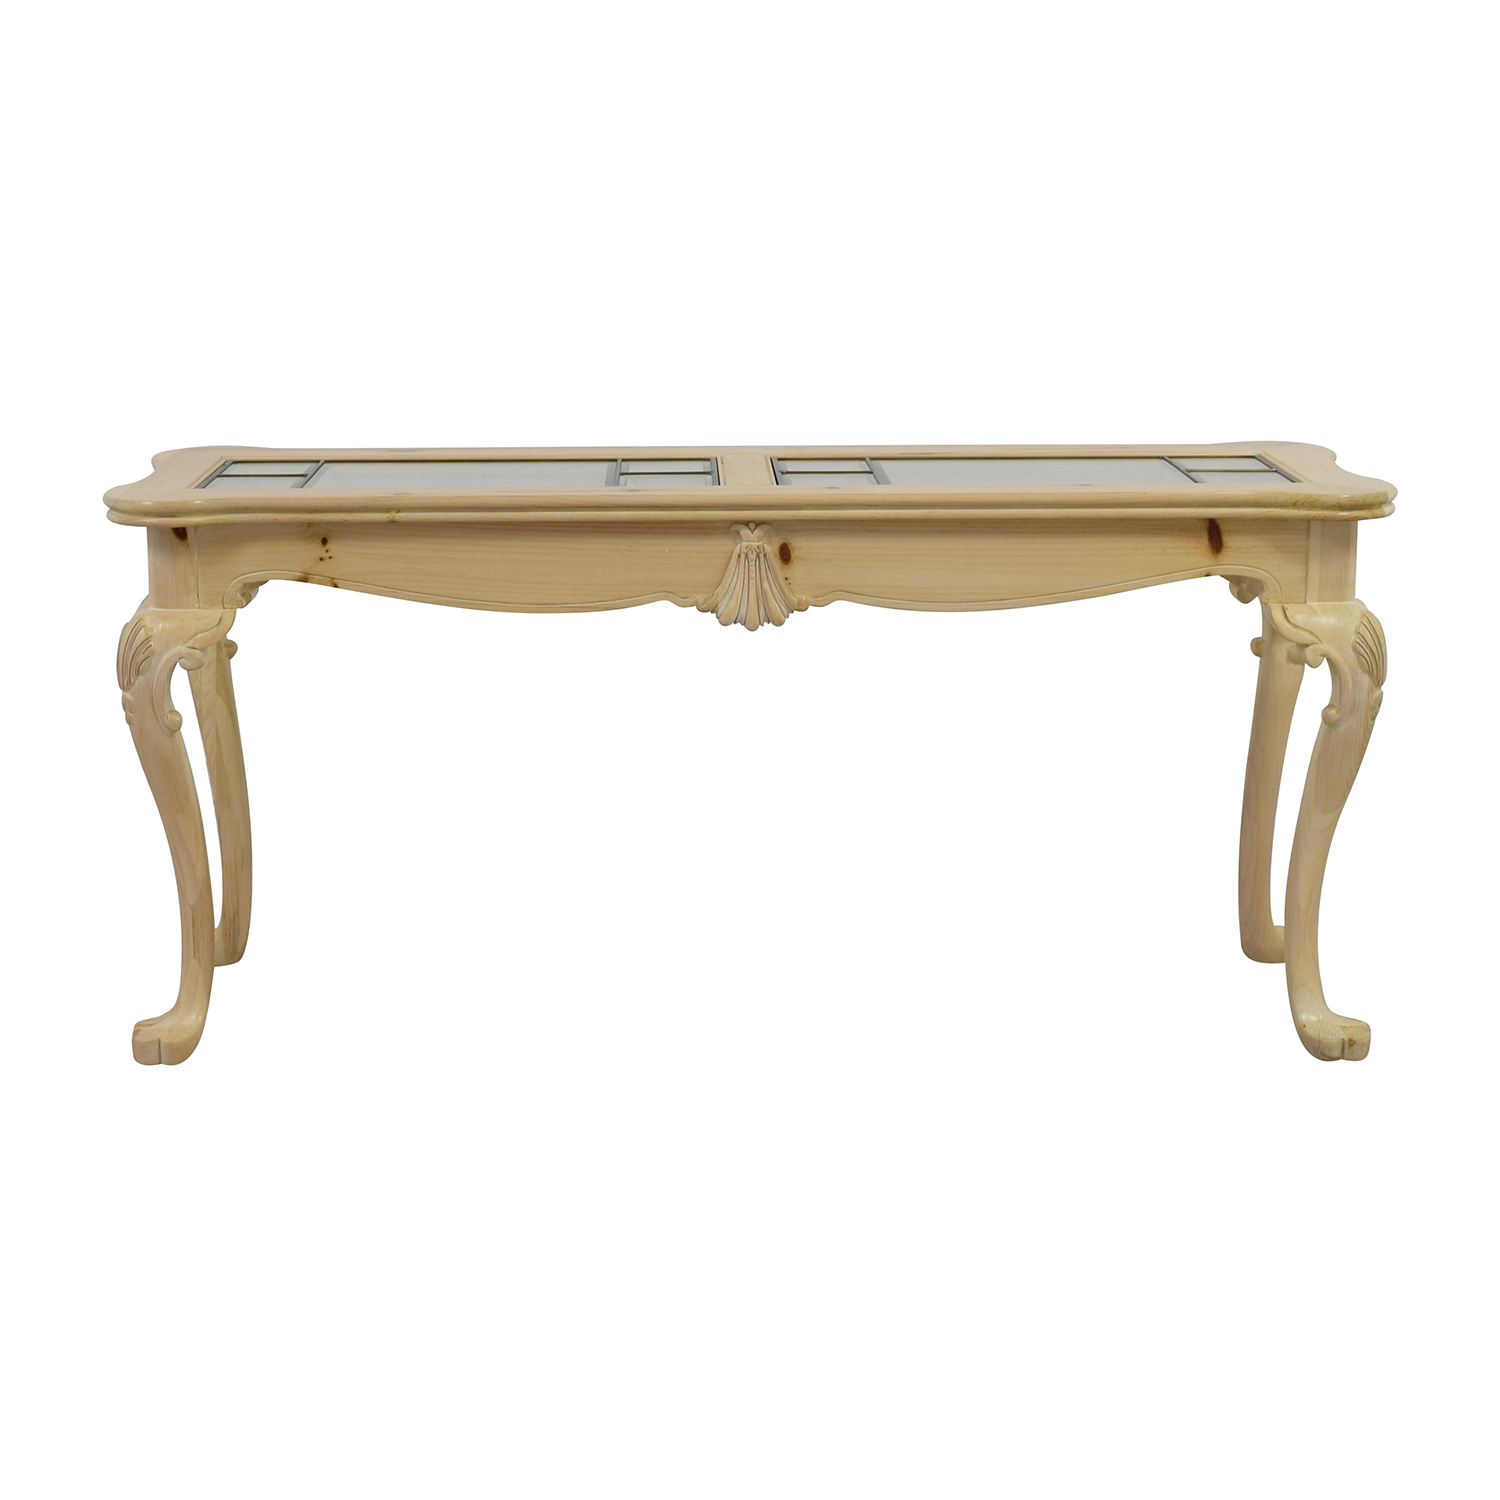 lexington sofa table large clack bed natural wood furniture